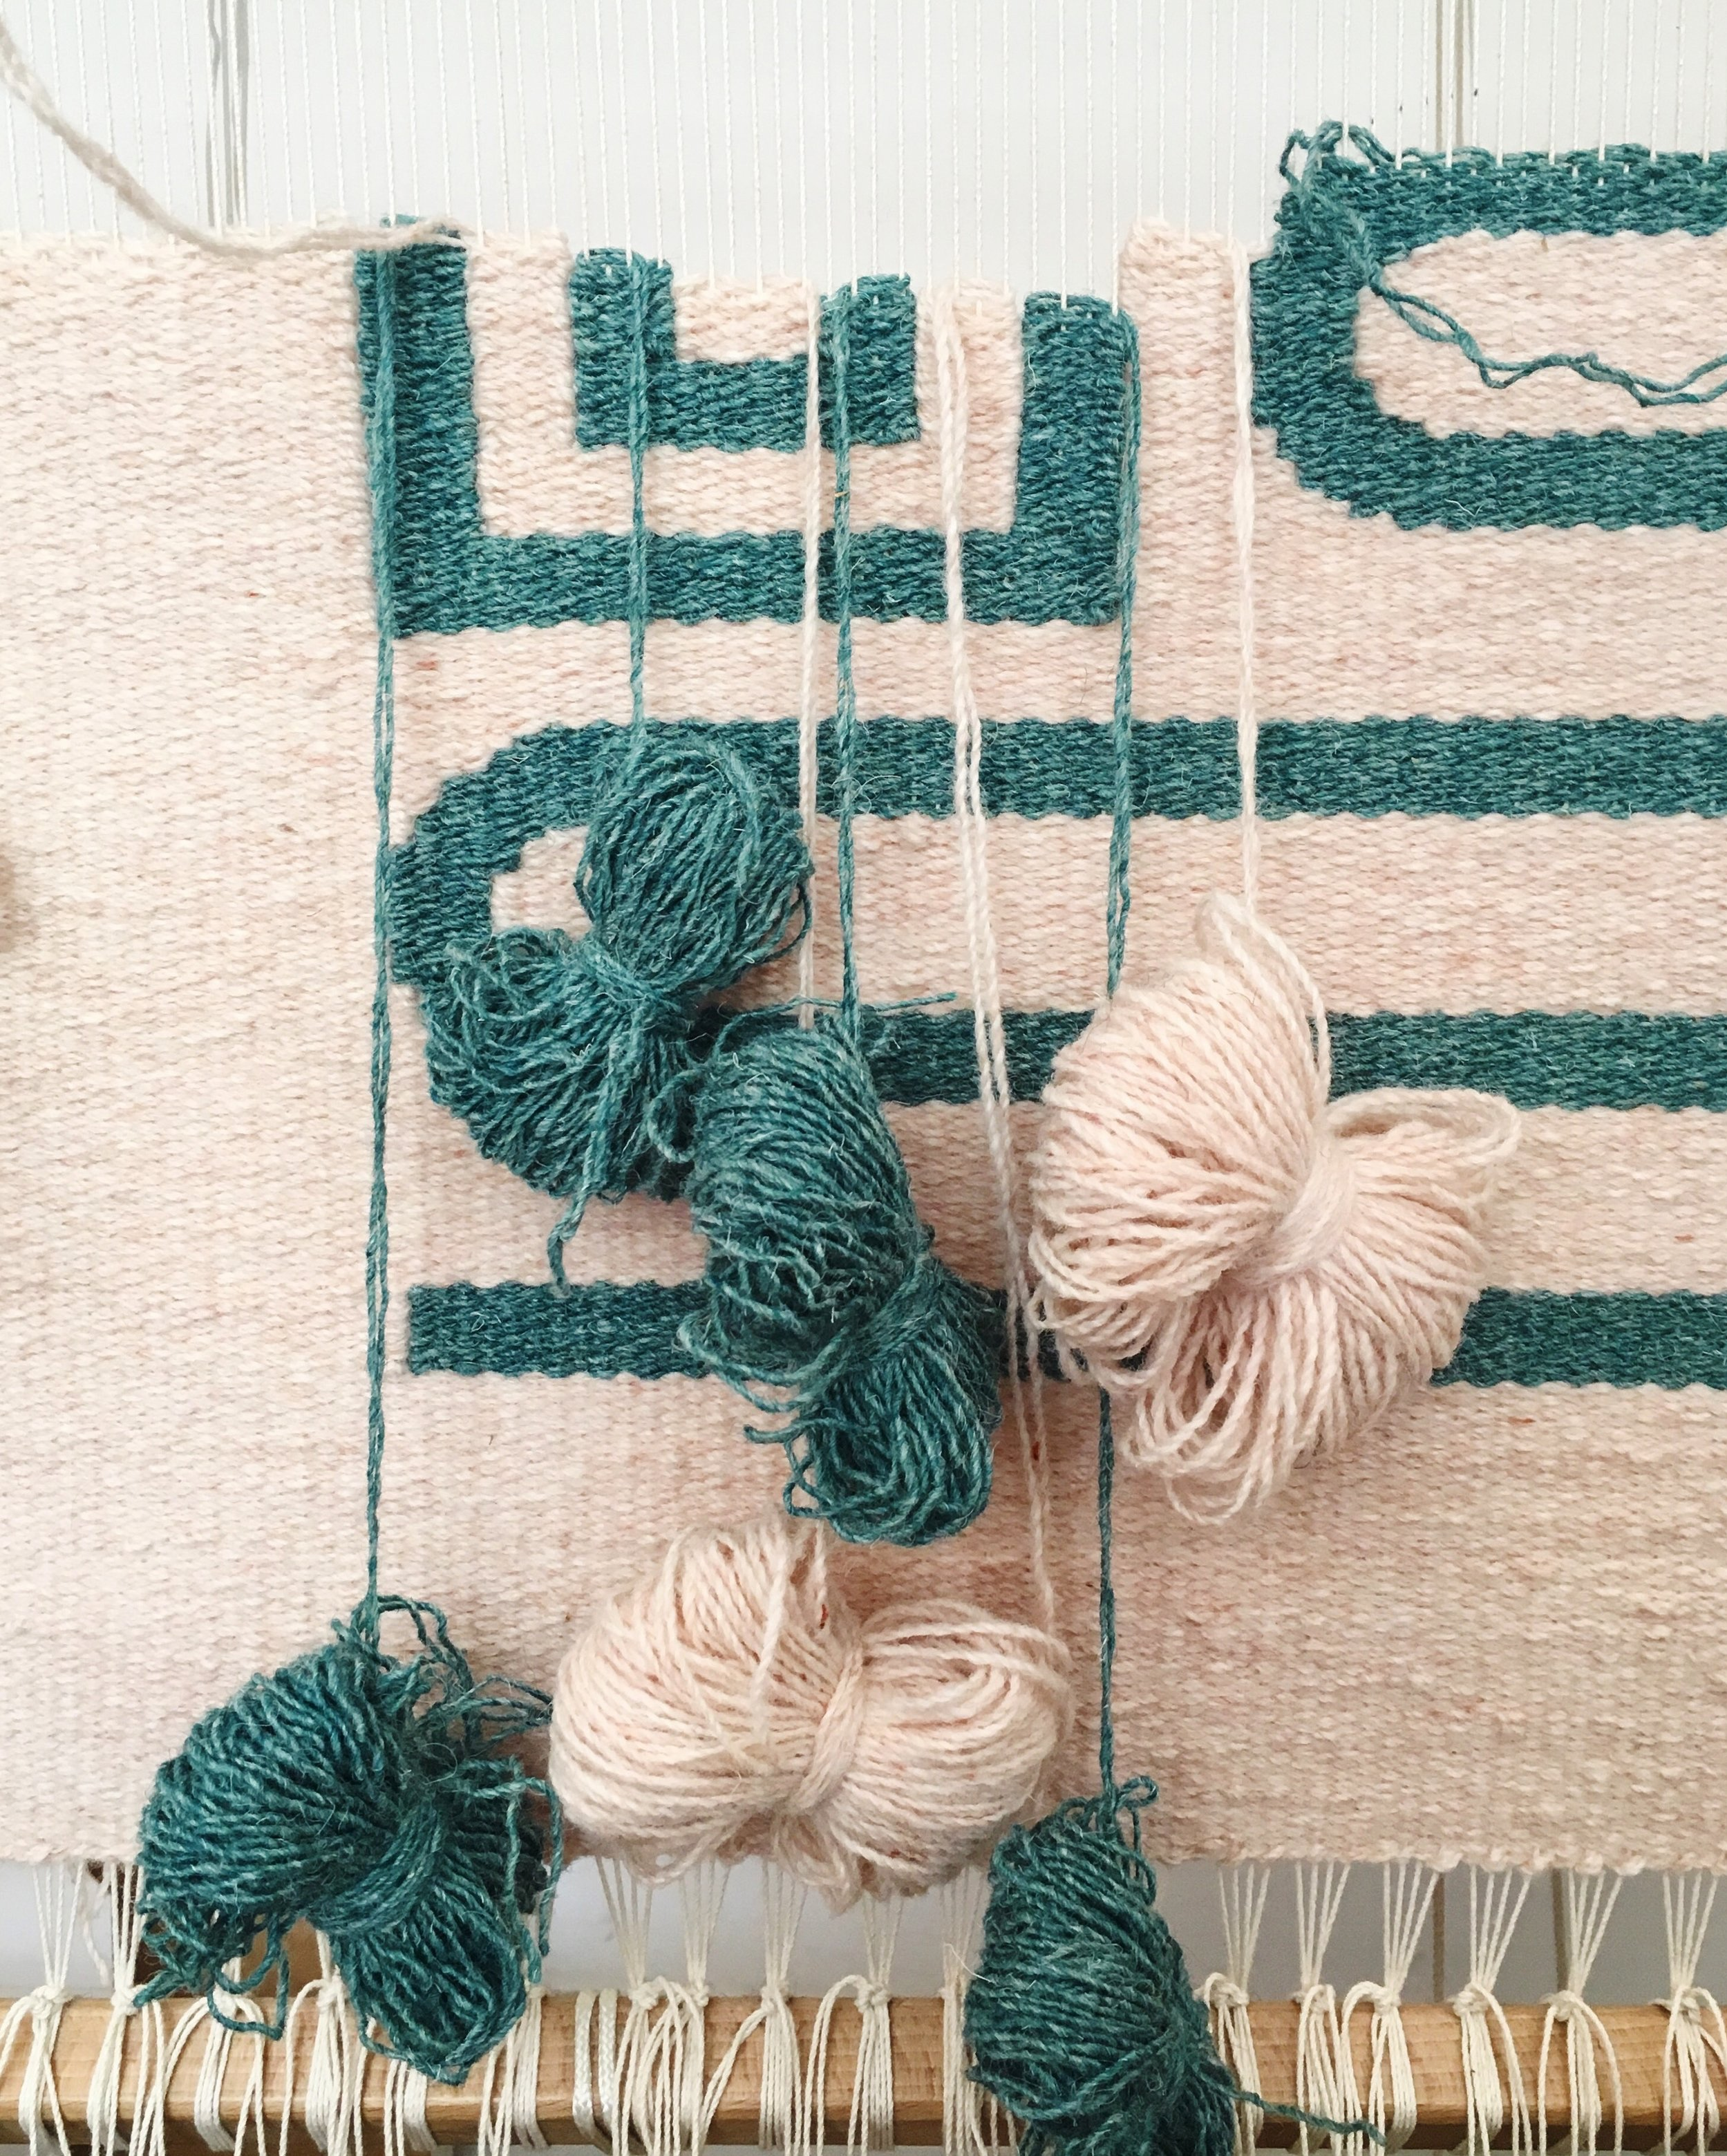 In the online course, I'll be talking through how to weave more complex designs like this one